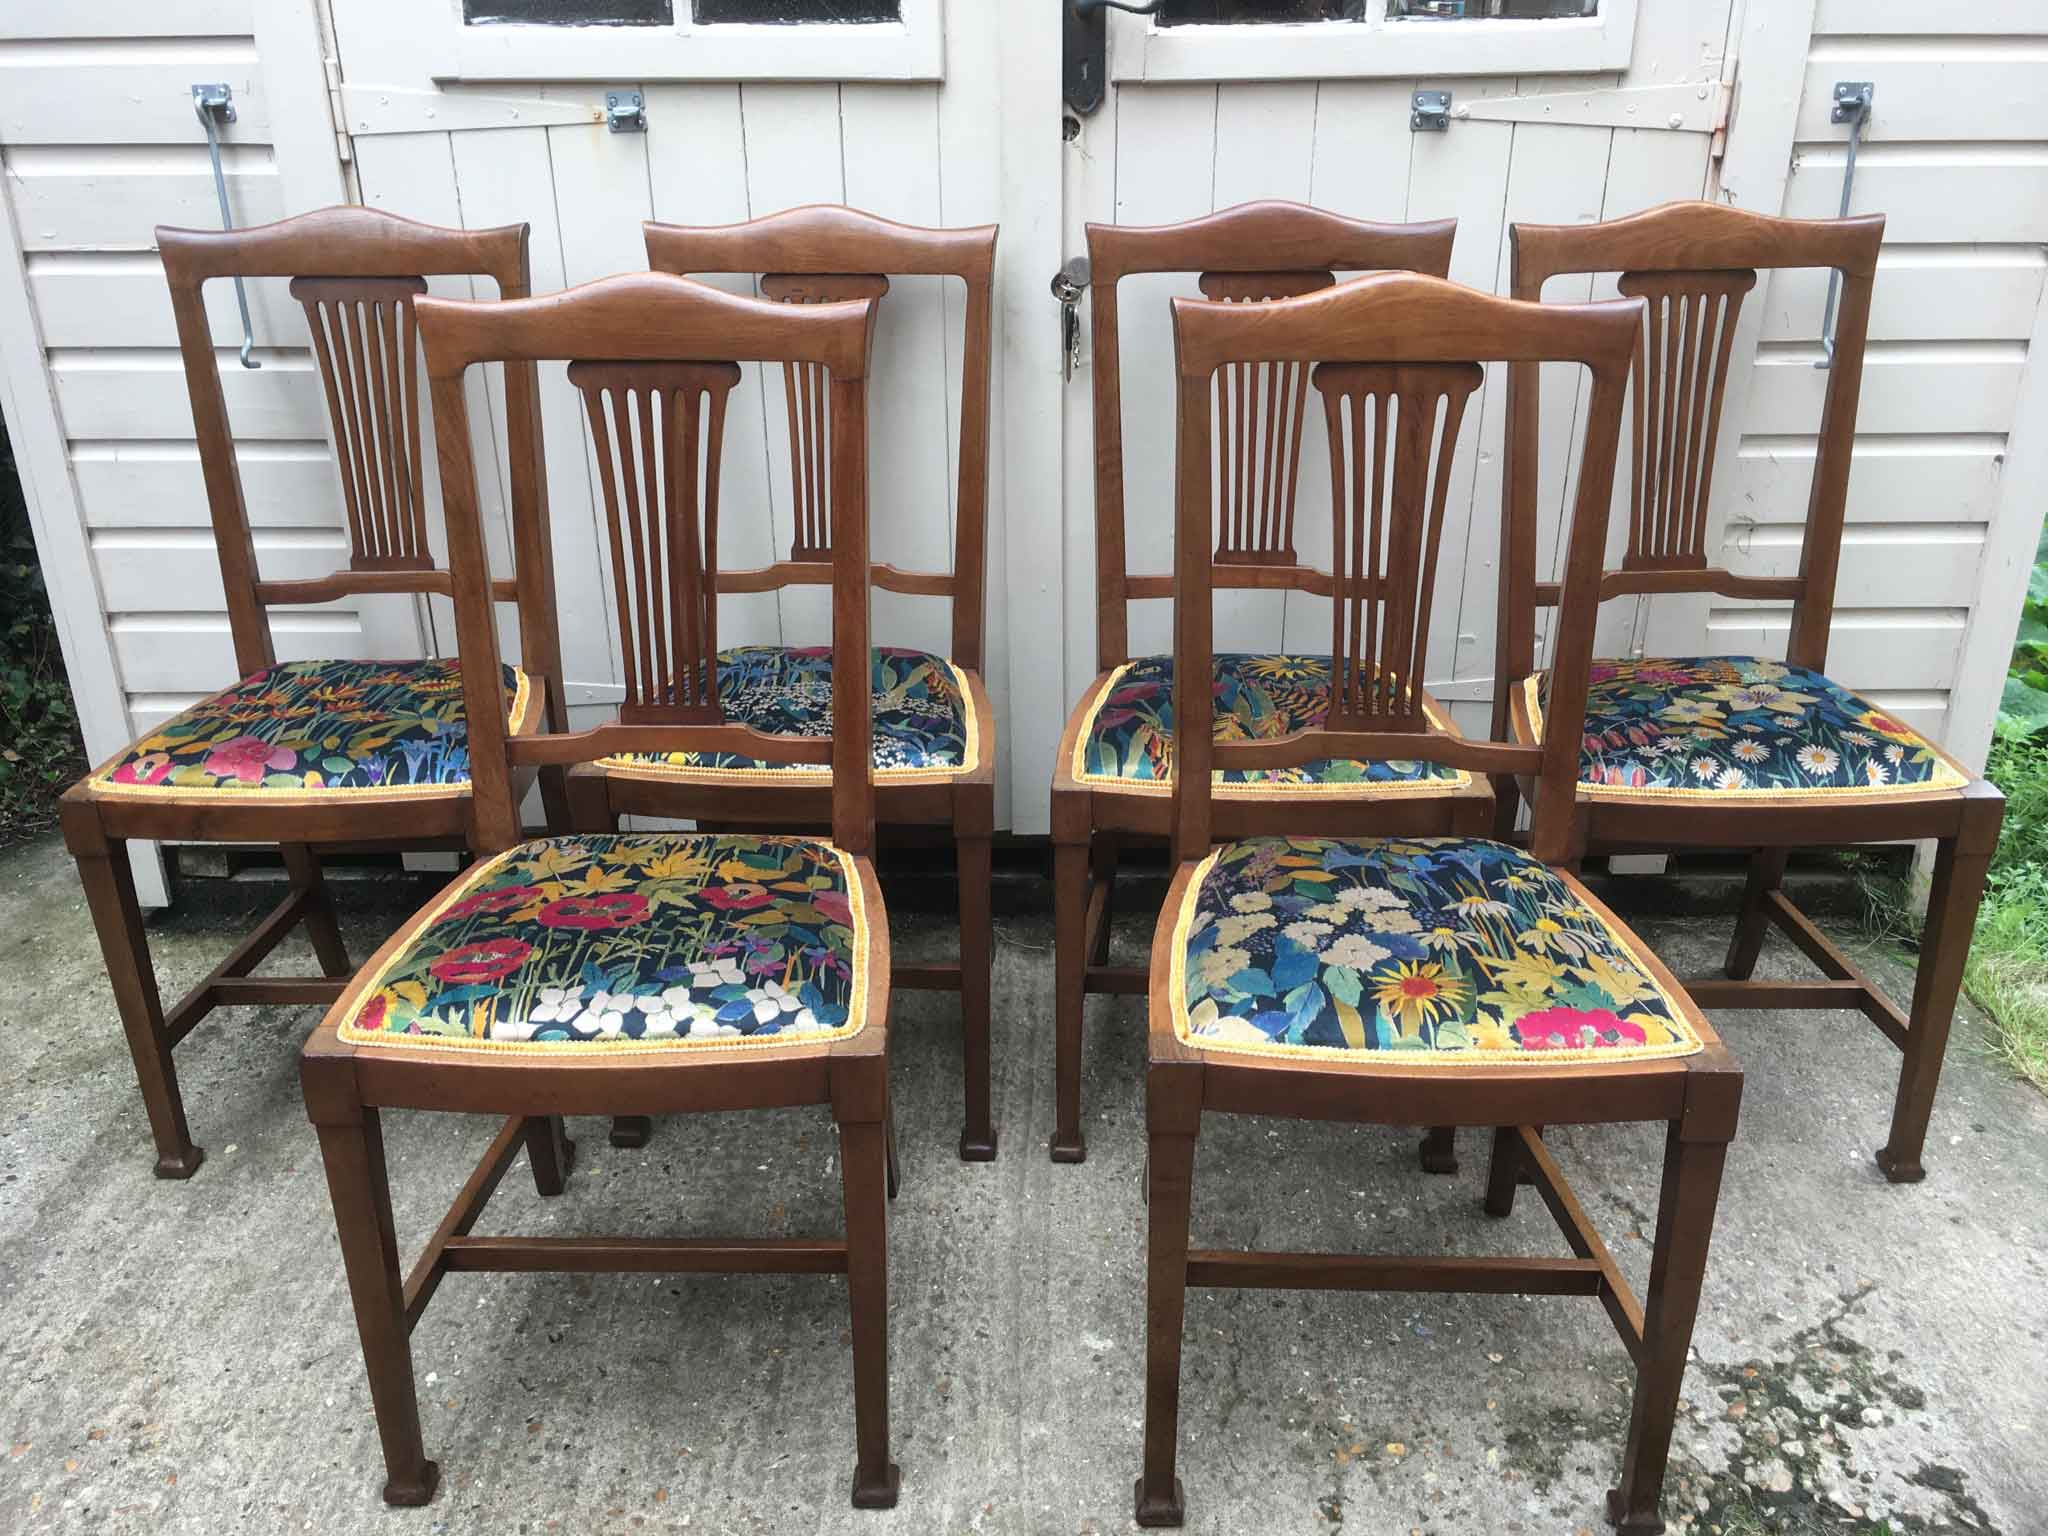 Edwardian dining chairs upholstered in faria flowers velvet by liberty